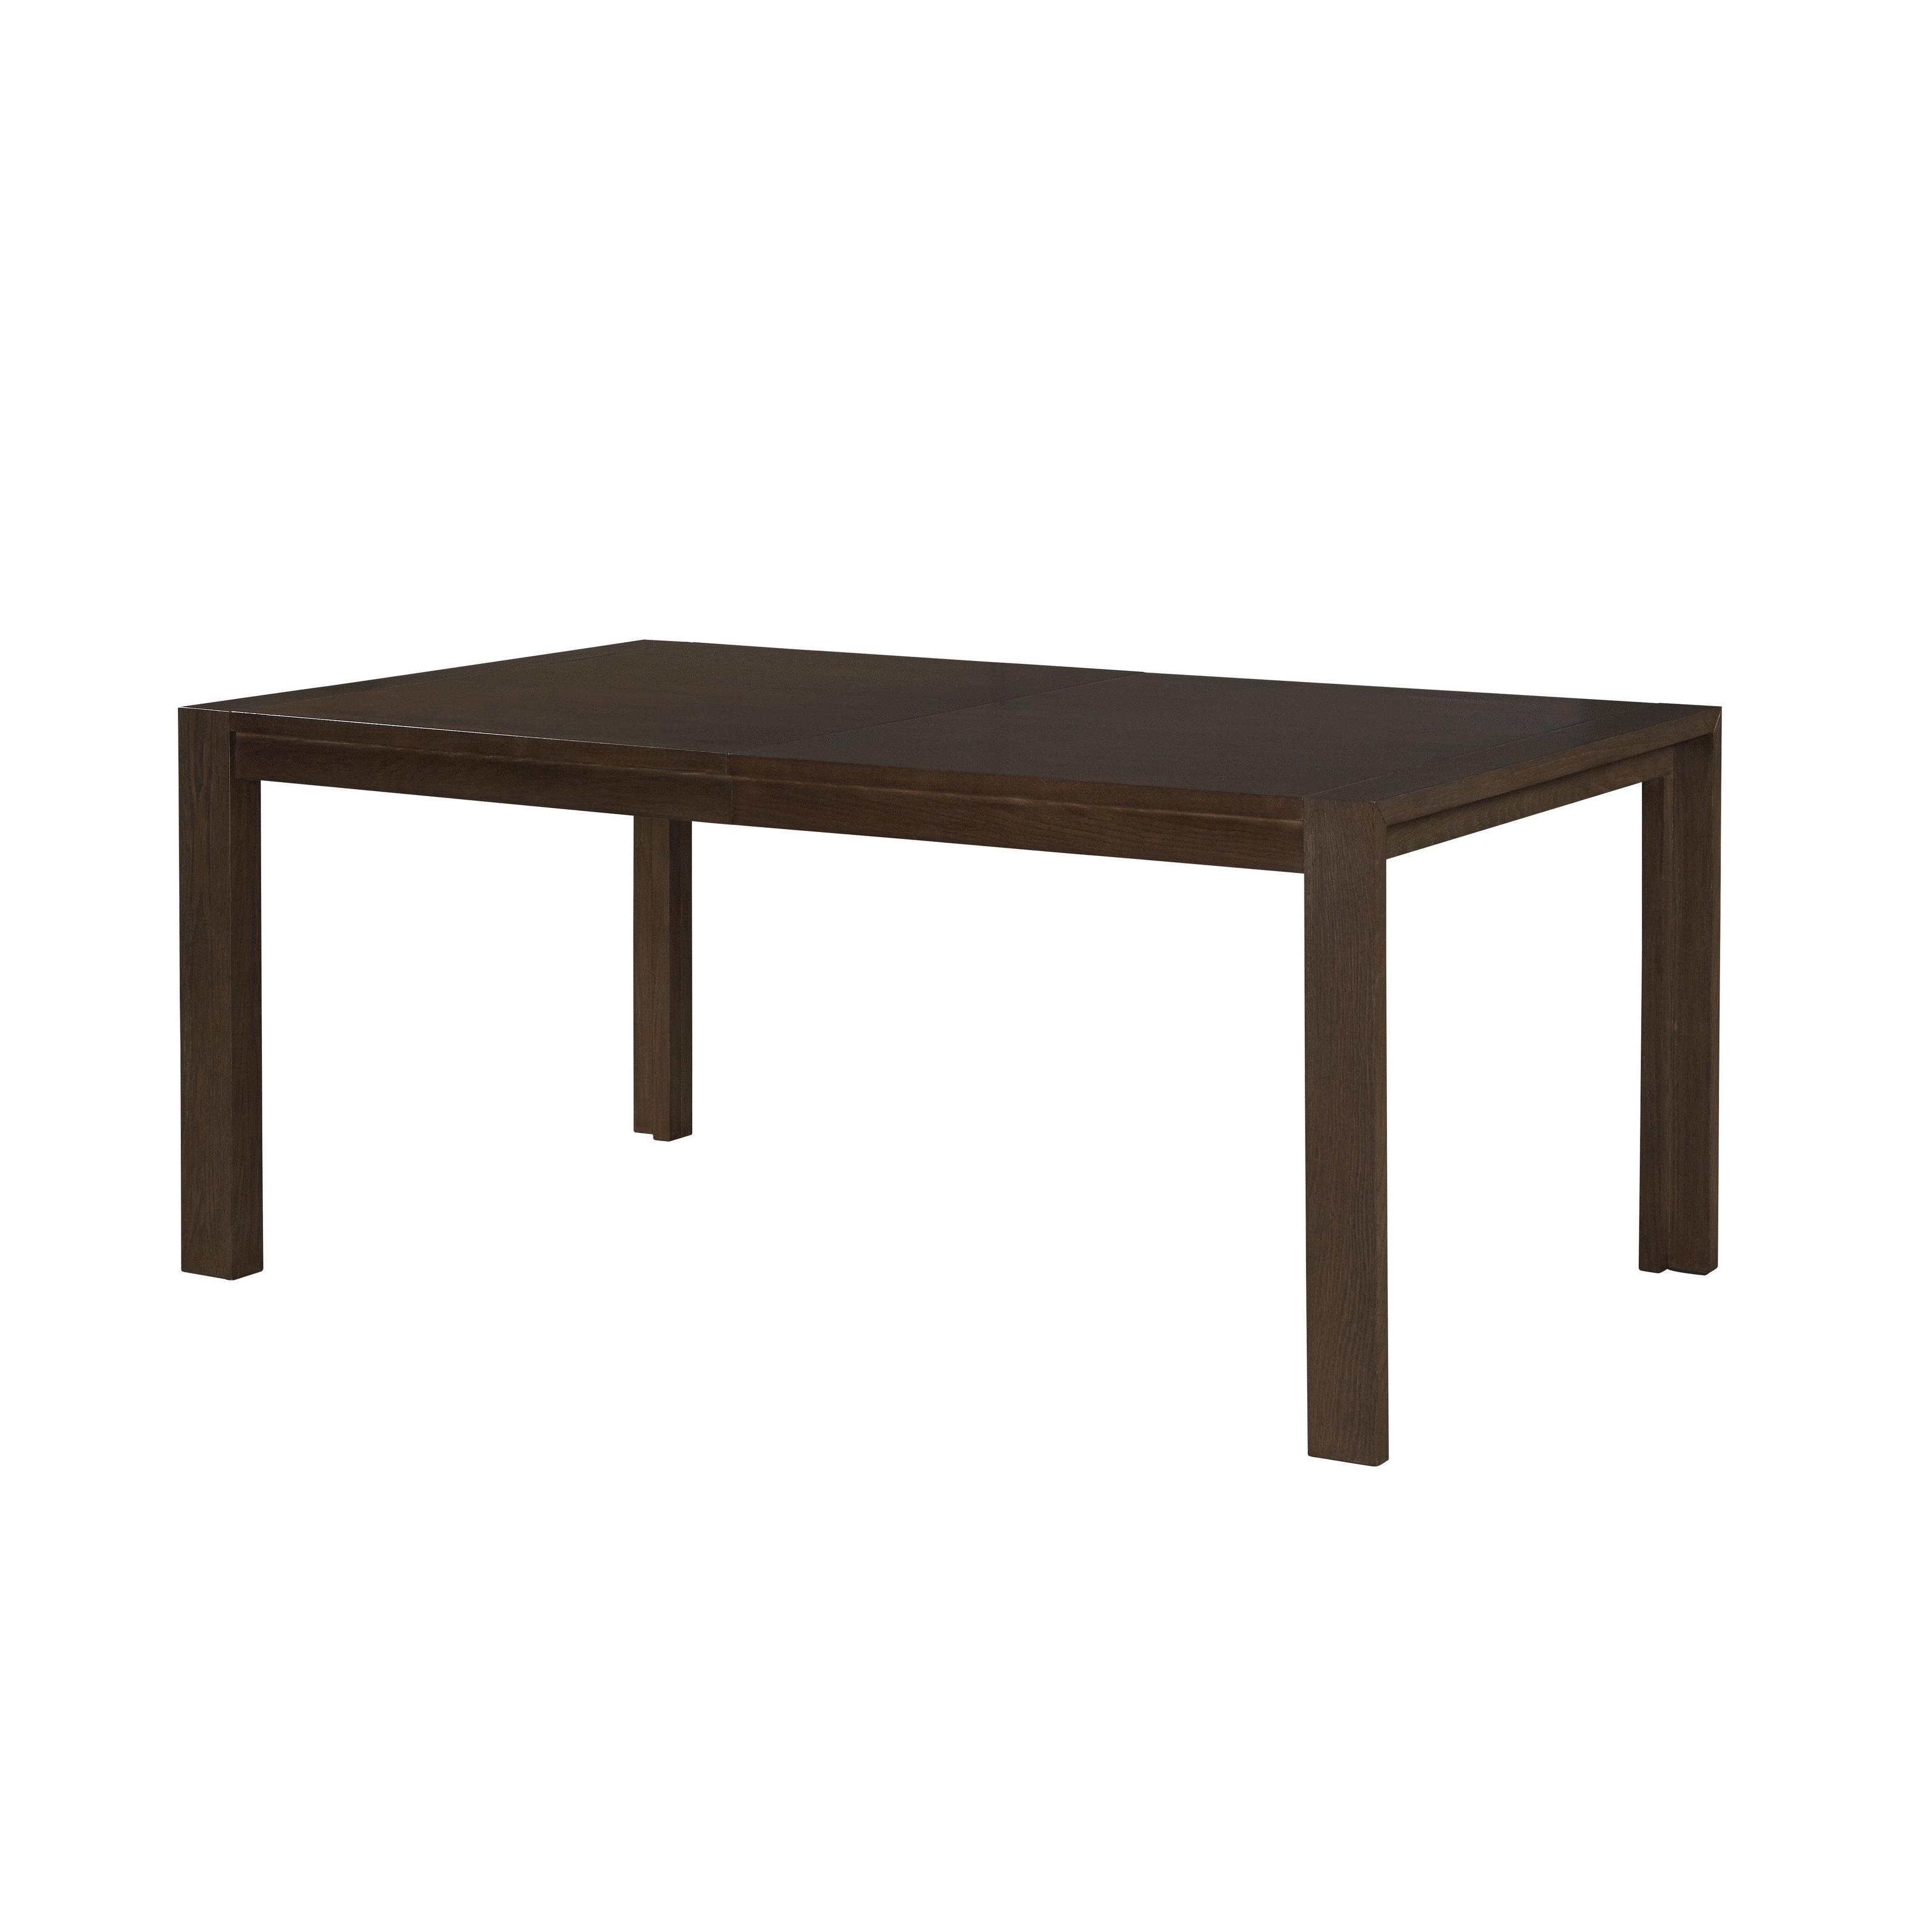 Well Liked Hudson Dining Tables And Chairs Pertaining To Shop Hudson 7 Piece Rectangular Dining Set – Free Shipping Today (View 18 of 25)